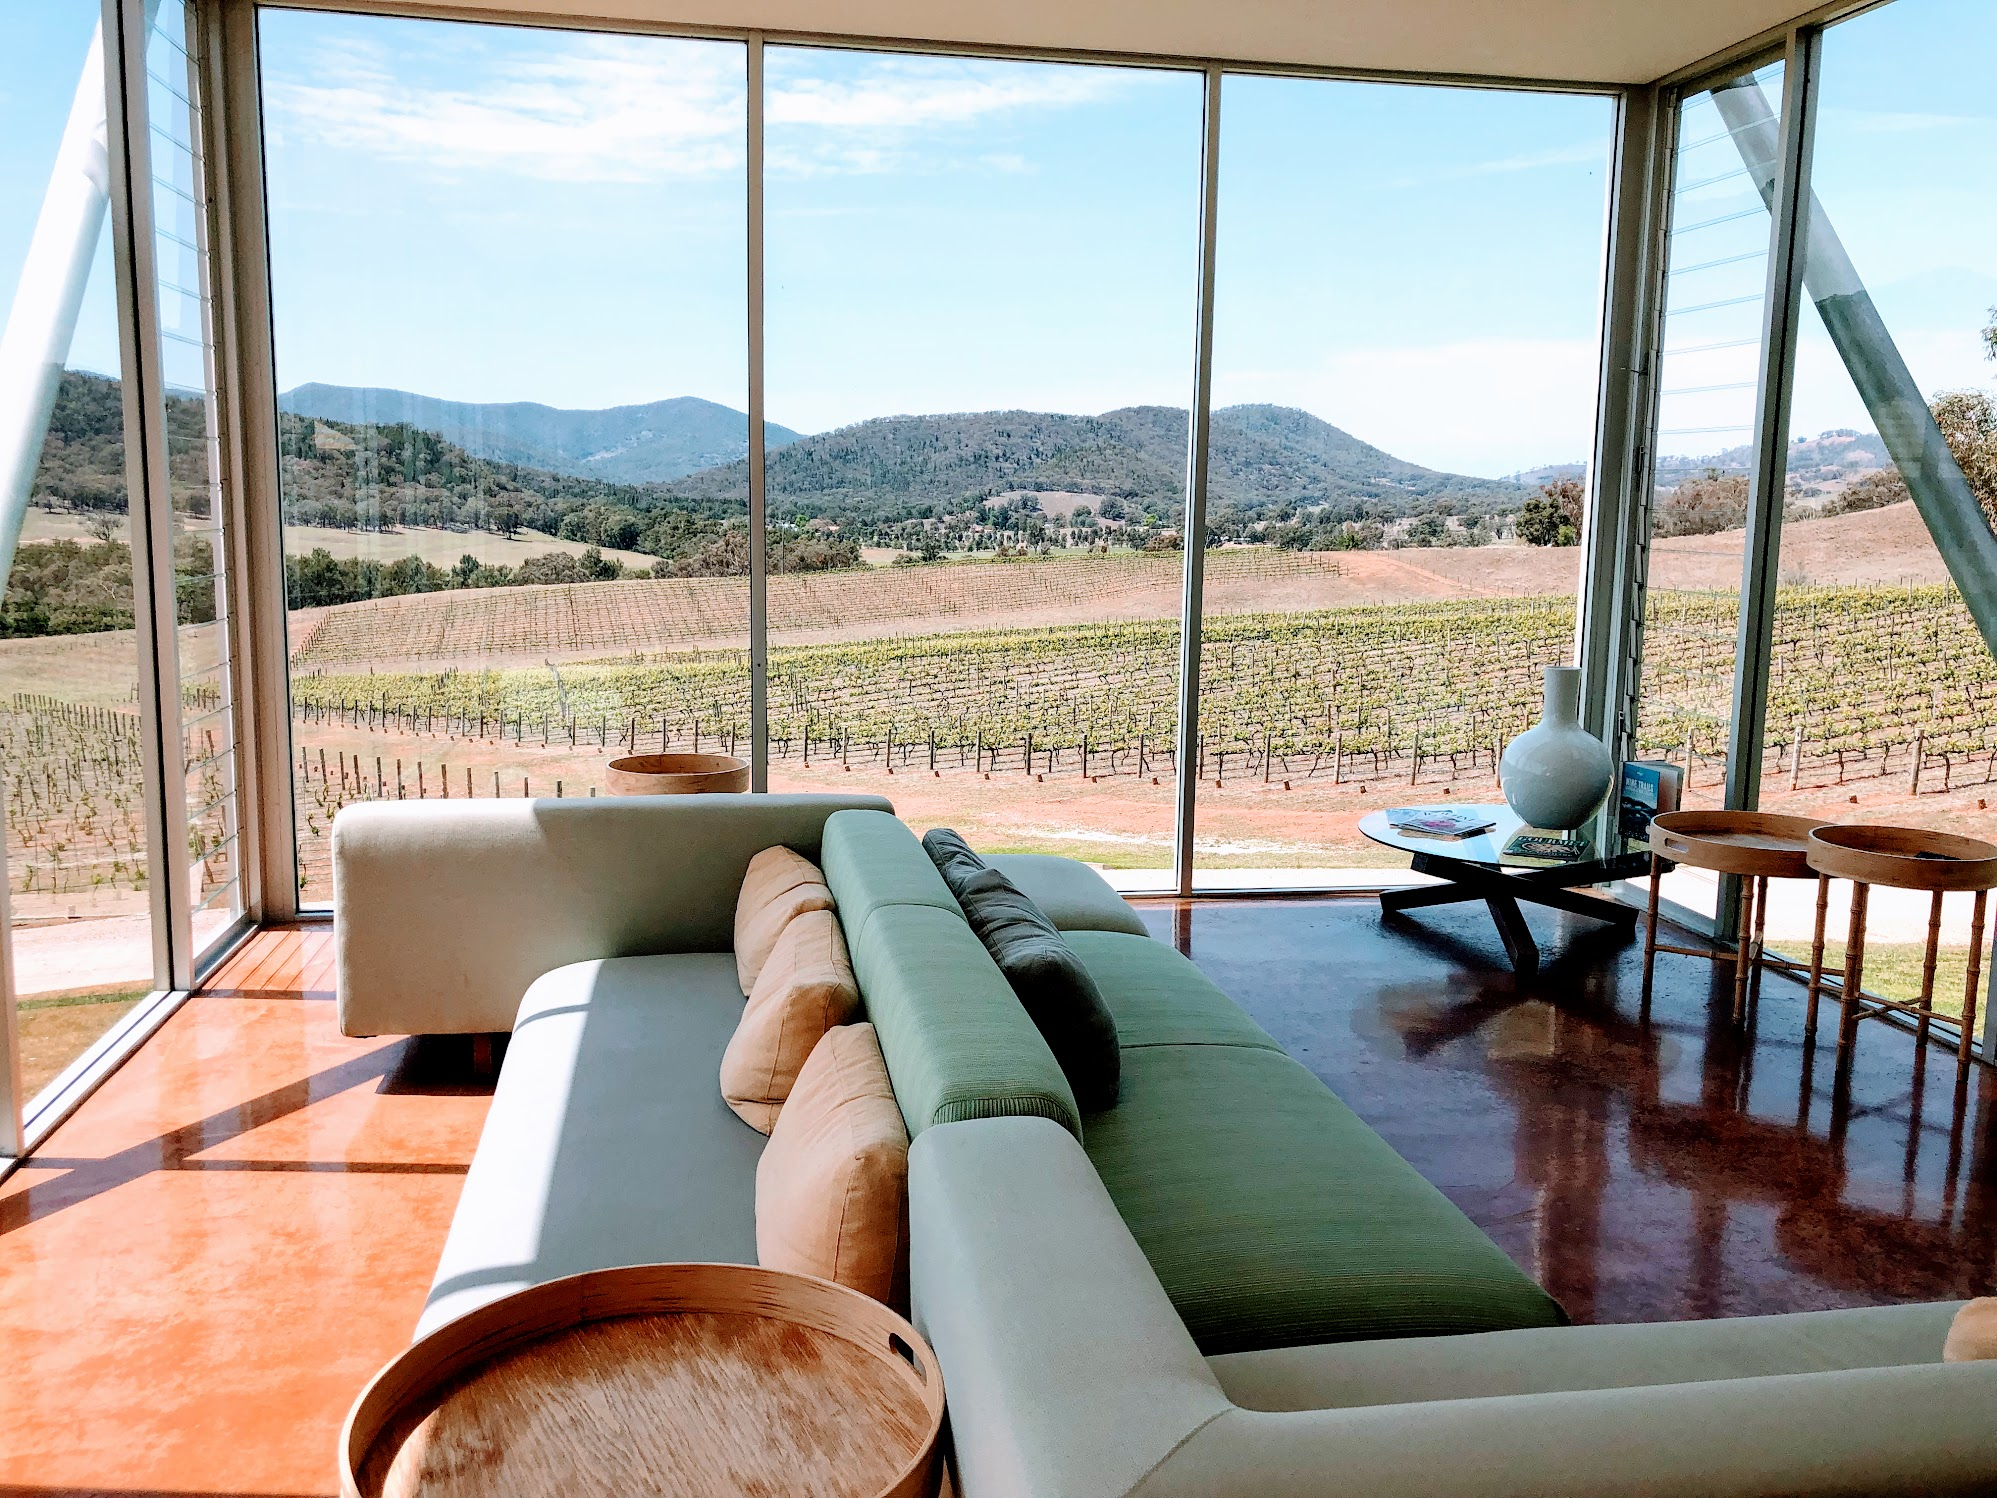 Comfy couches against a backdrop of the vineyards at Logan wine tasting room